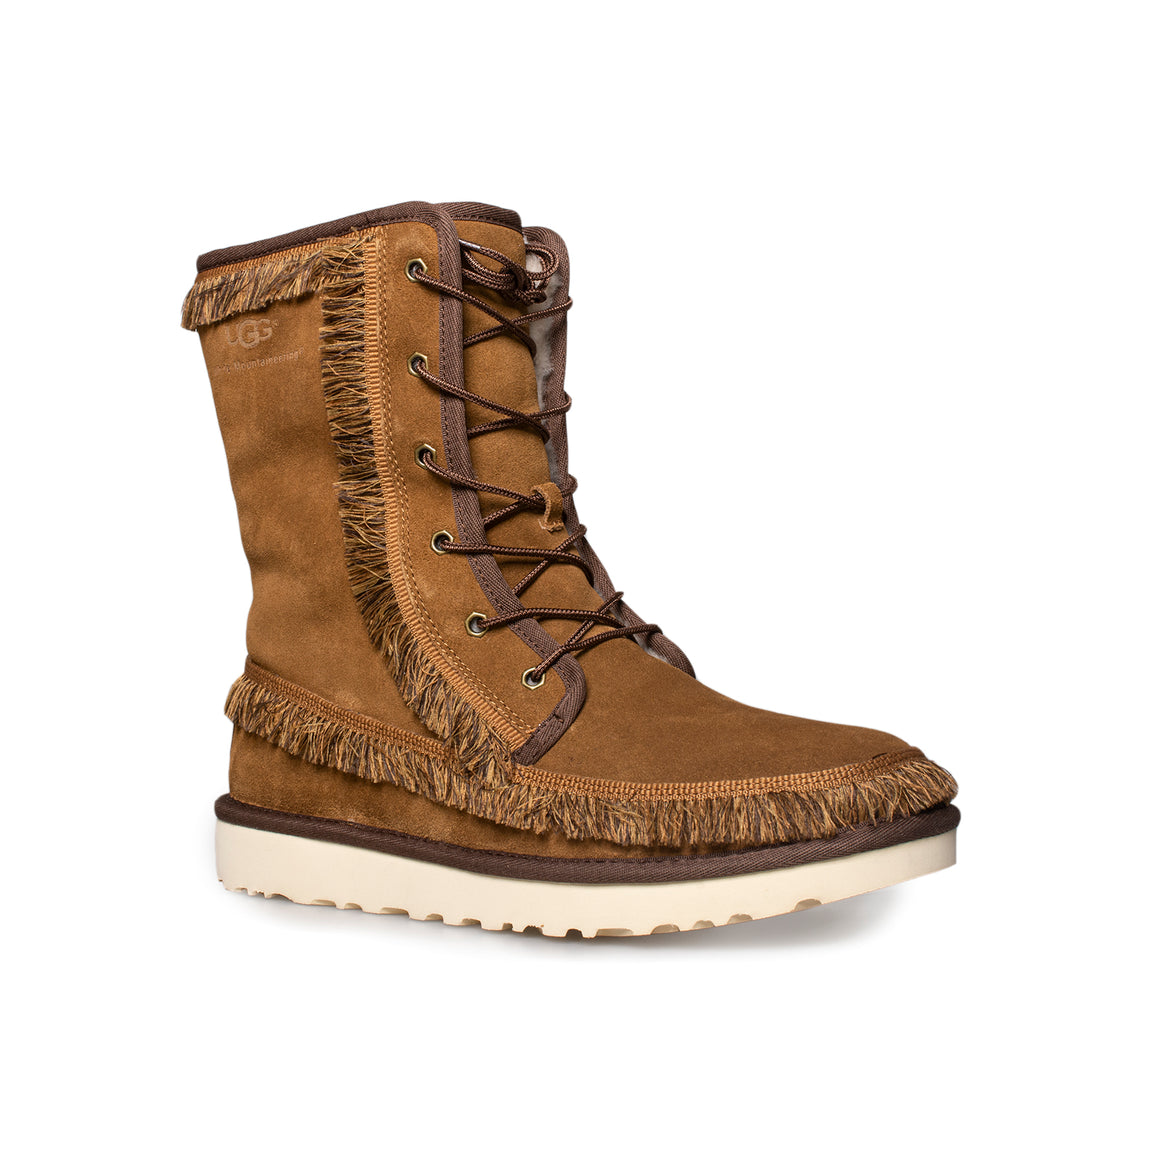 UGG Riki Lace Tall Chestnut Boots - Men's